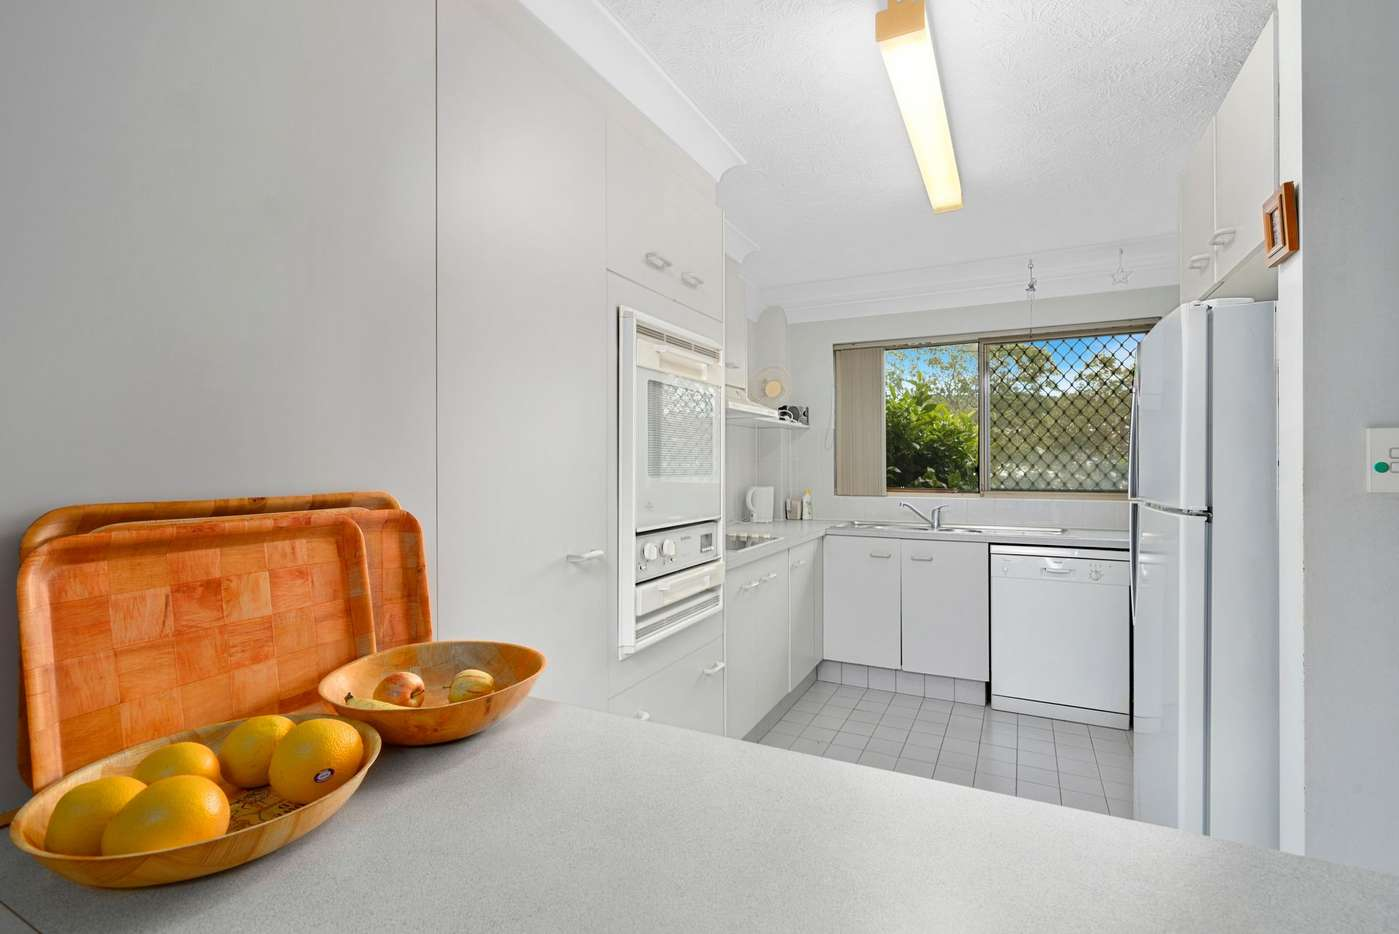 Main view of Homely unit listing, 2/4 Botany Crescent, Tweed Heads, NSW 2485